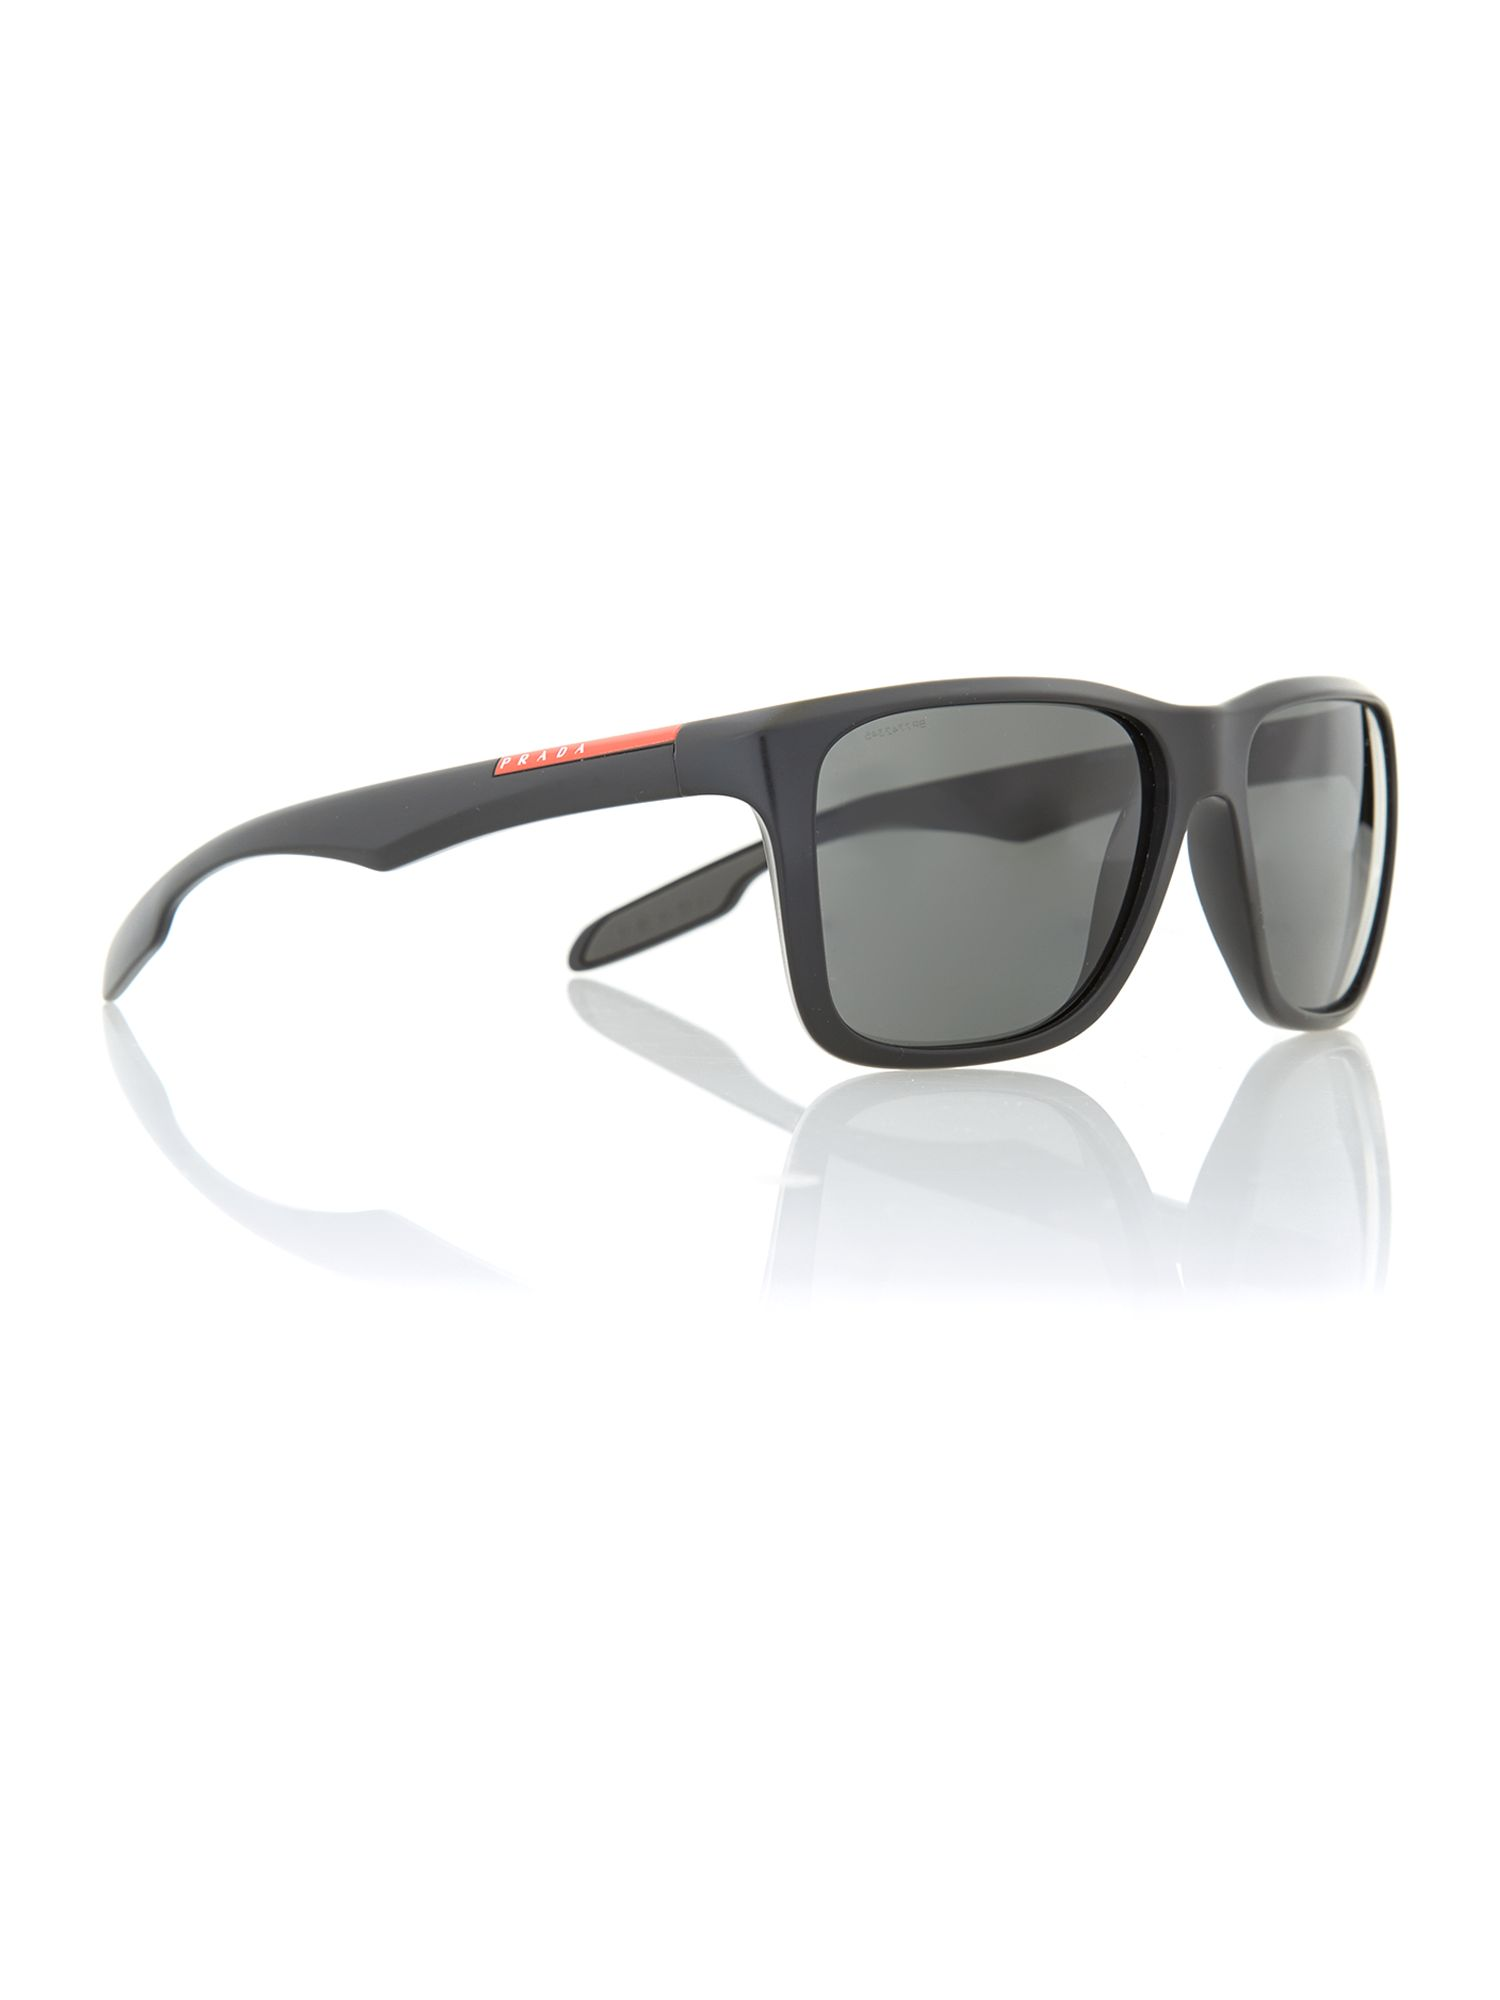 Mens Shiny Black Square Sunglasses